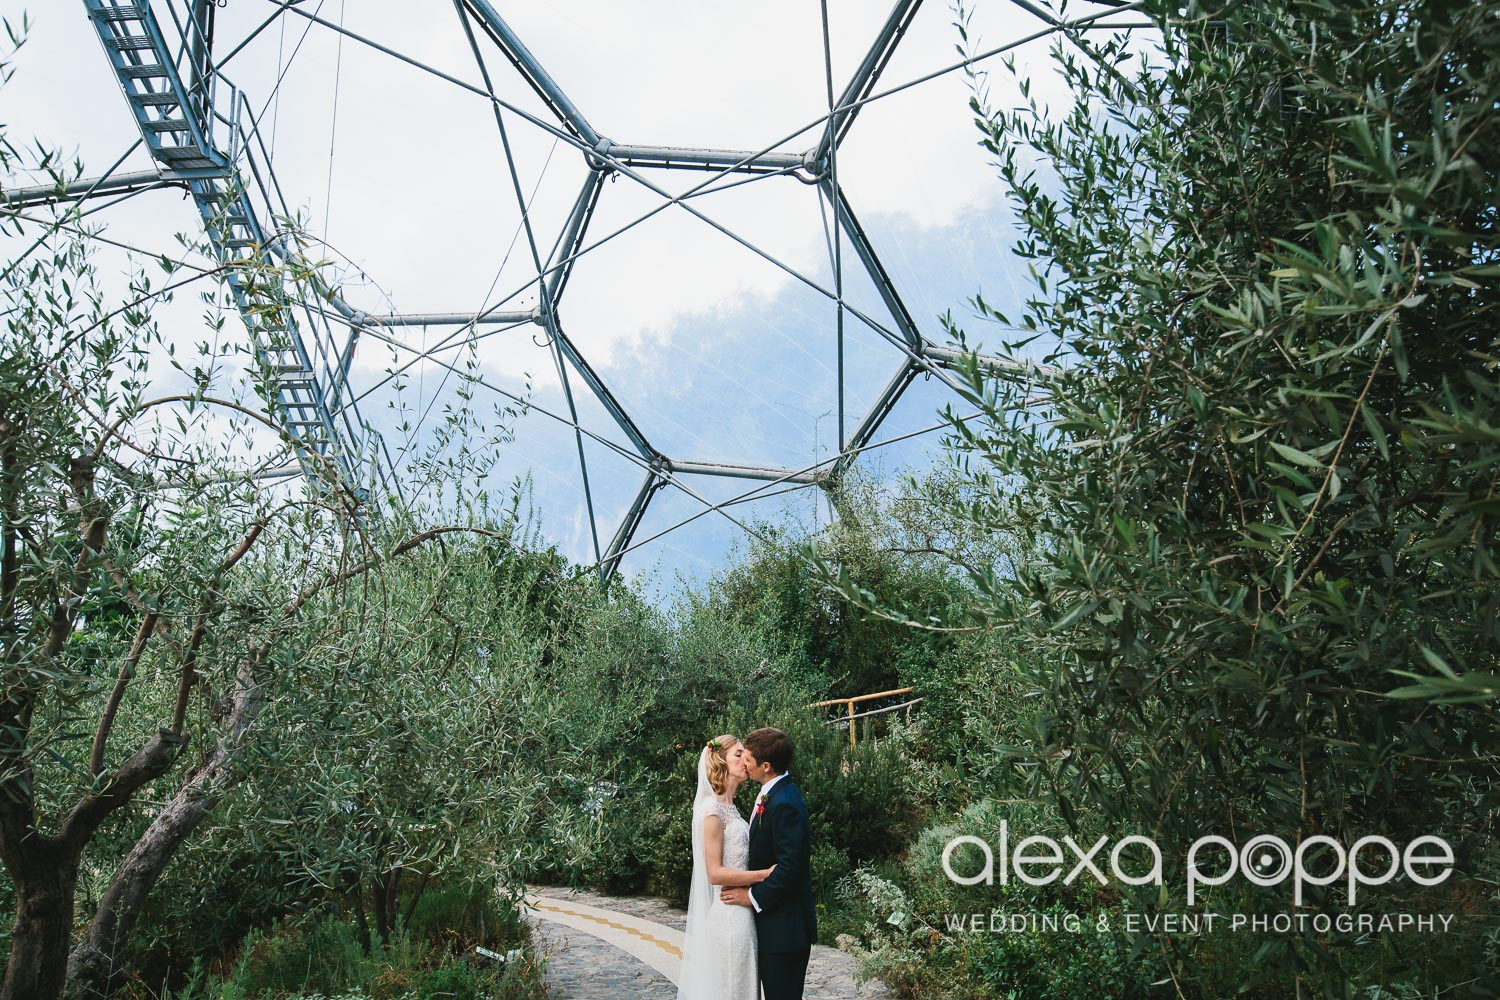 MD_wedding_edenproject-1.jpg